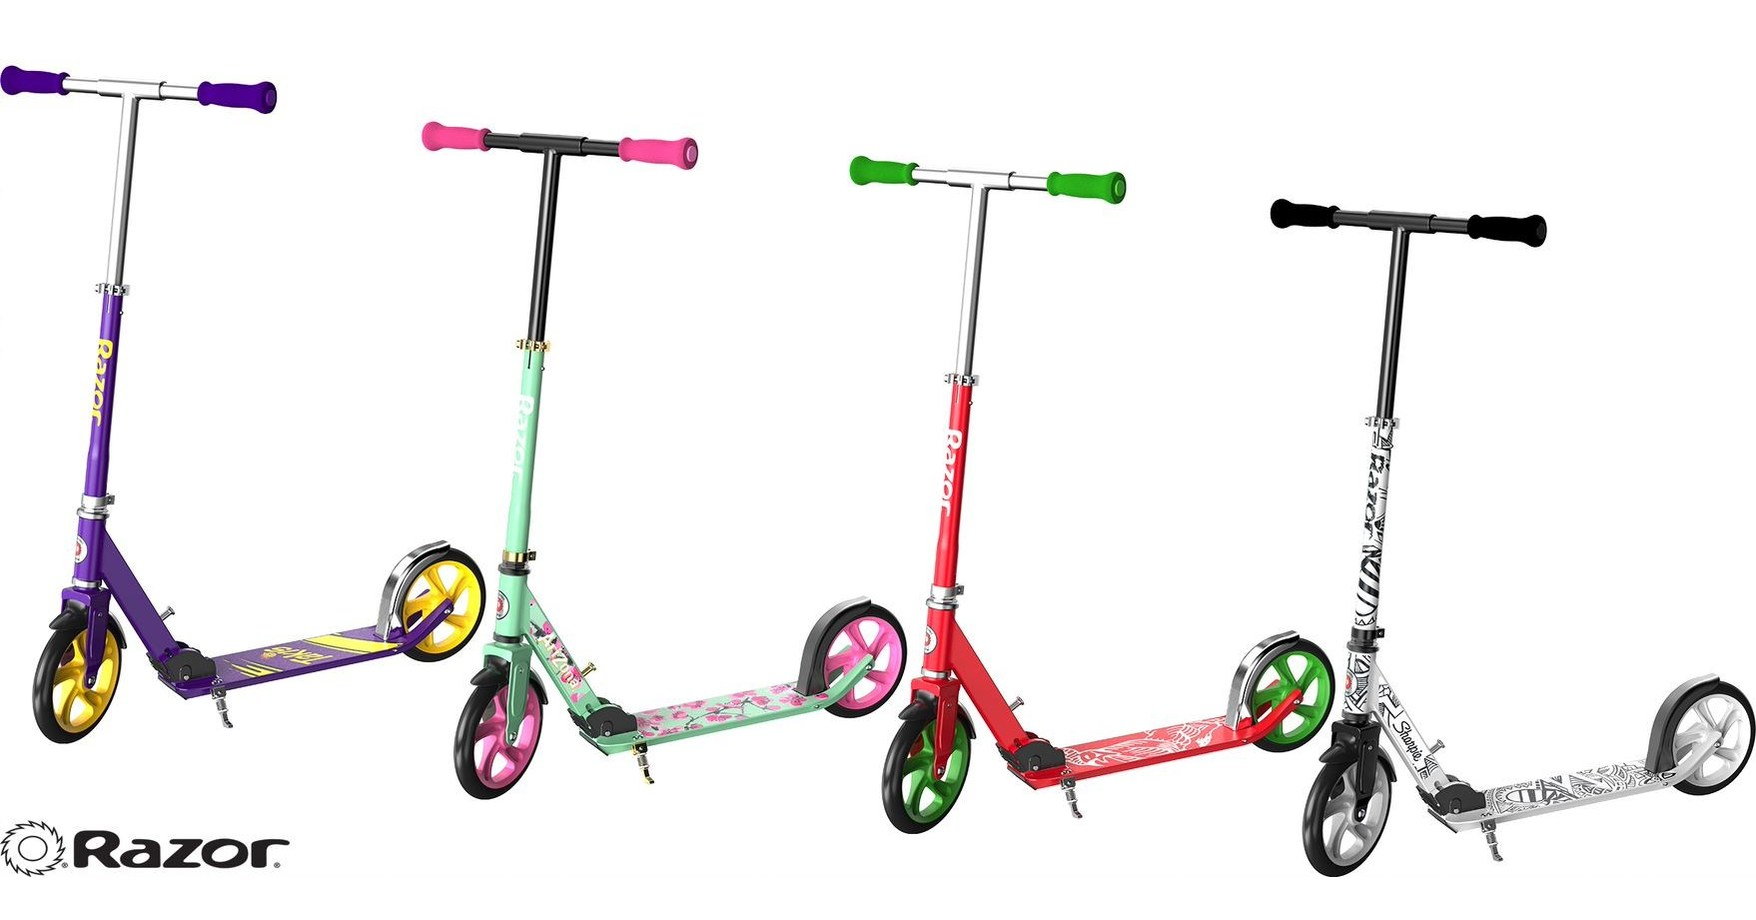 Razor Usa Launches First Ever Scooter Collaboration Series With Culturally Influential Brands Exclusively At Target And Razor Com